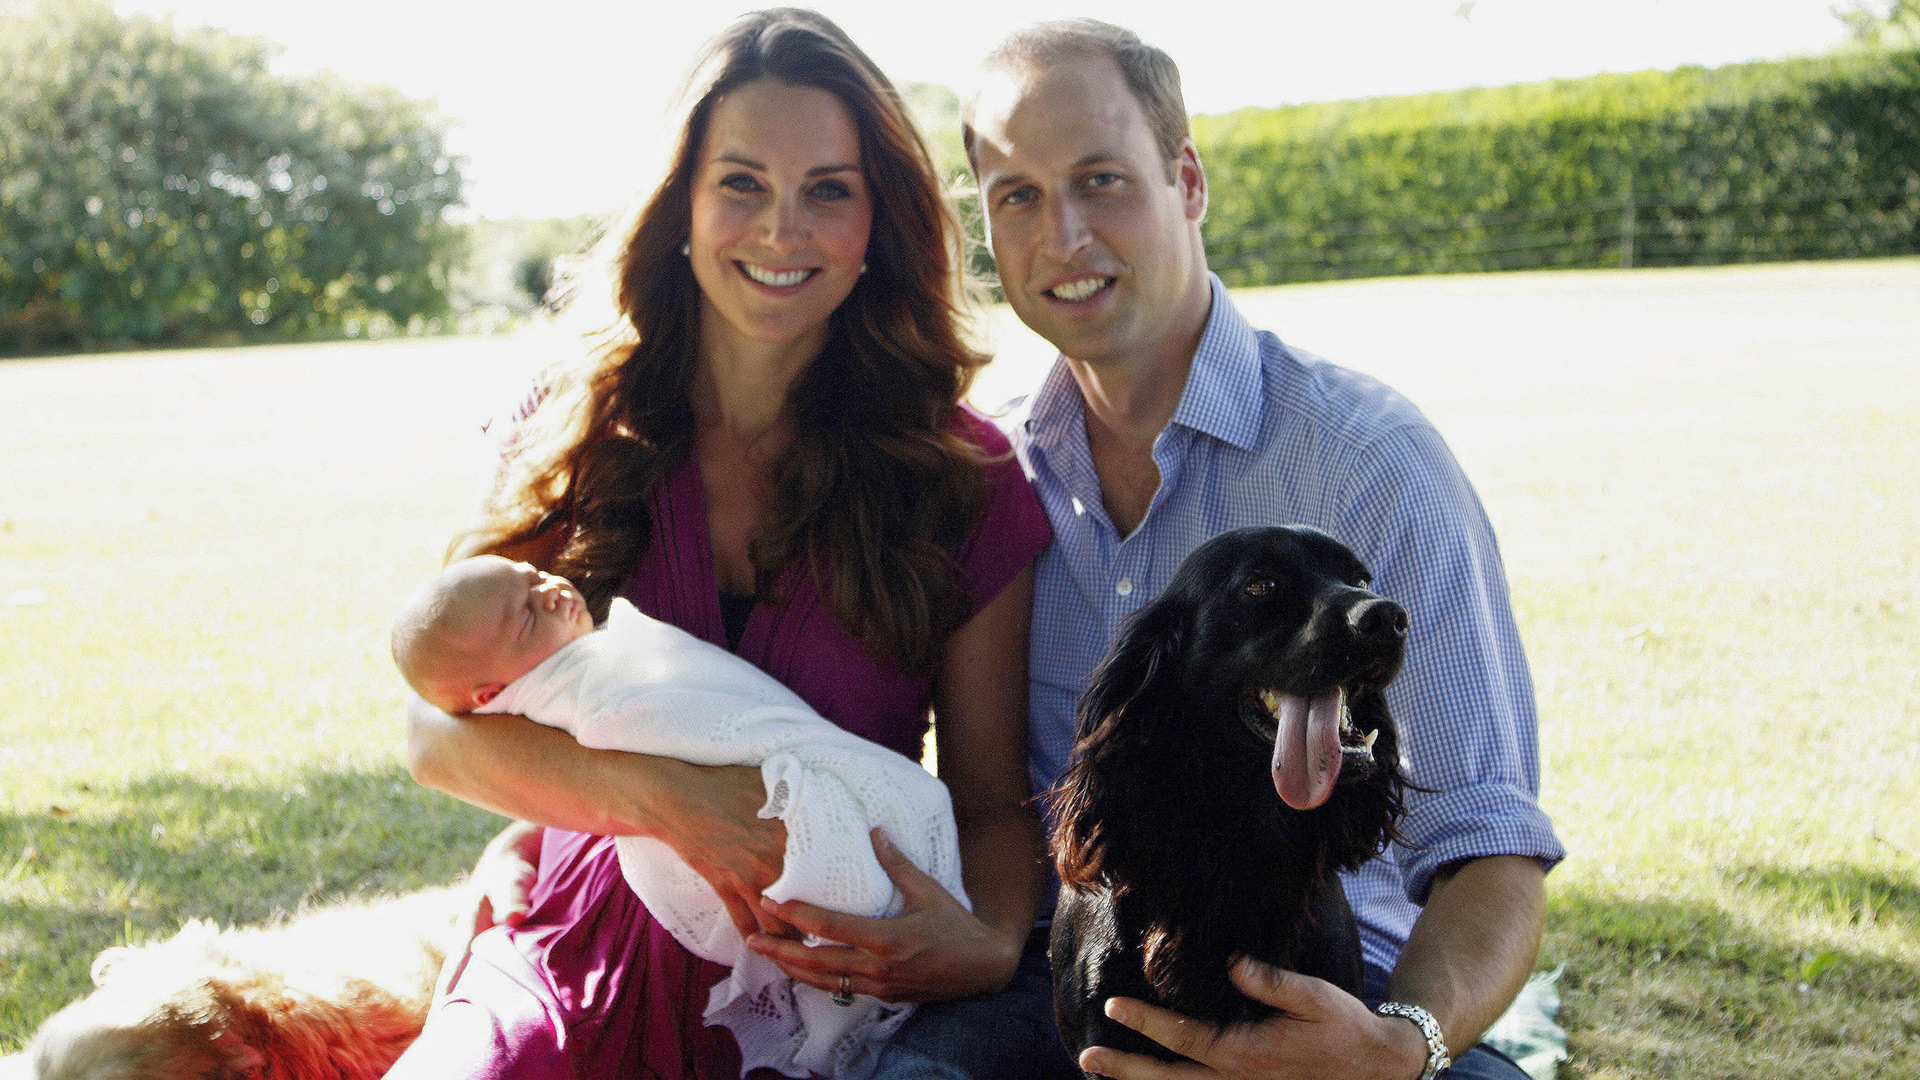 Get all the details on Prince George's adorable birthday celebration